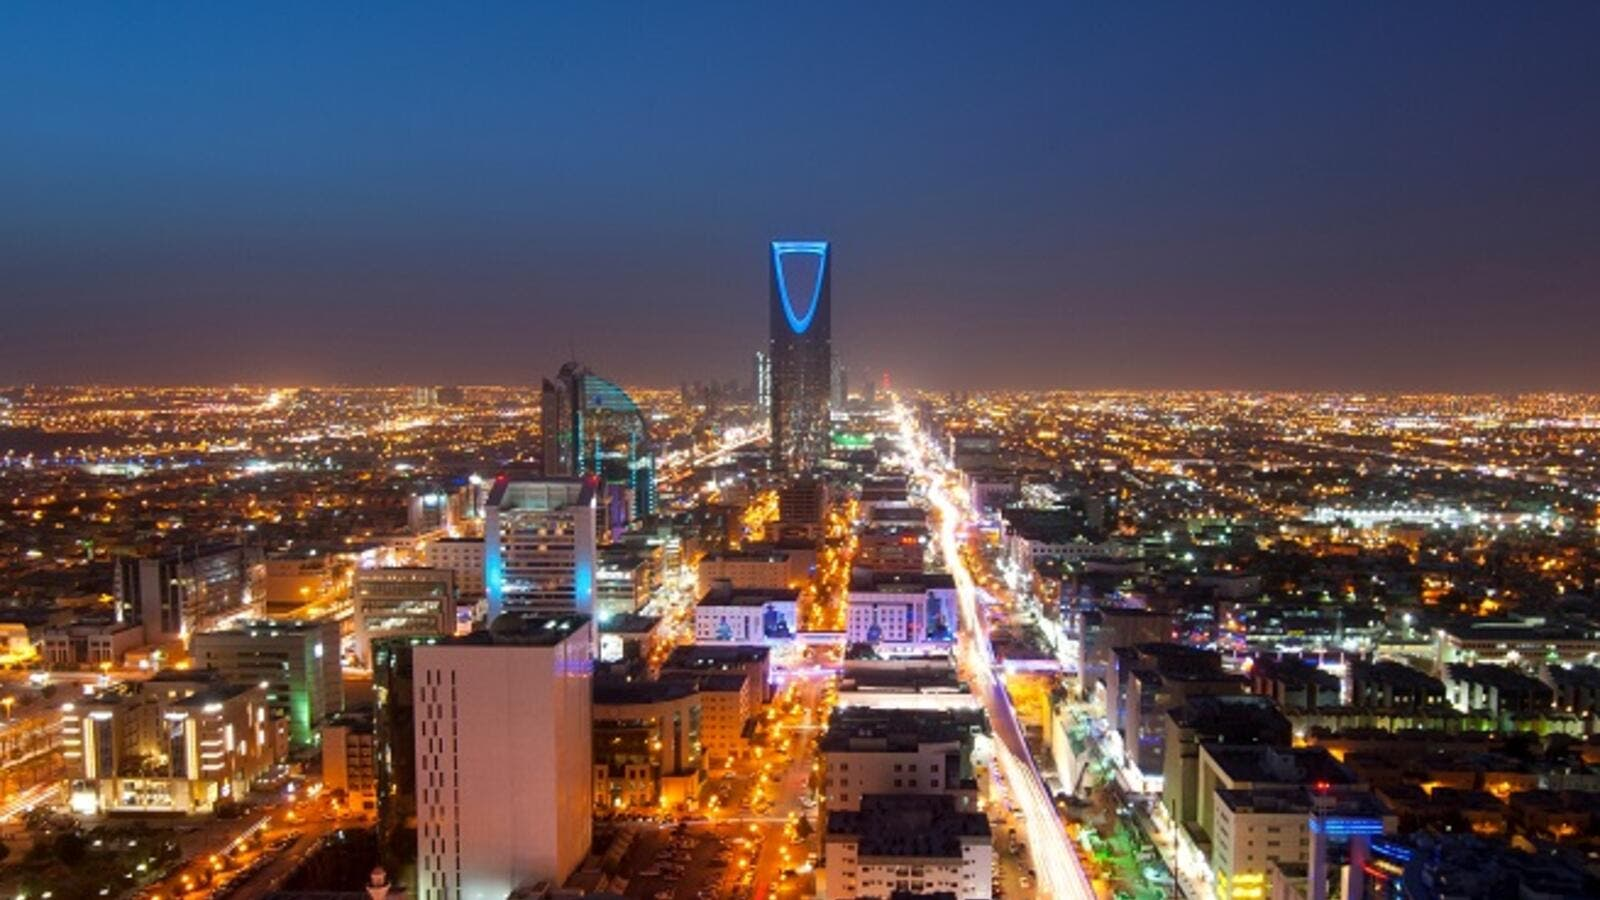 Saudi Arabia is about to begin development of the first area of its mega business zone NEOM. (Shutterstock)